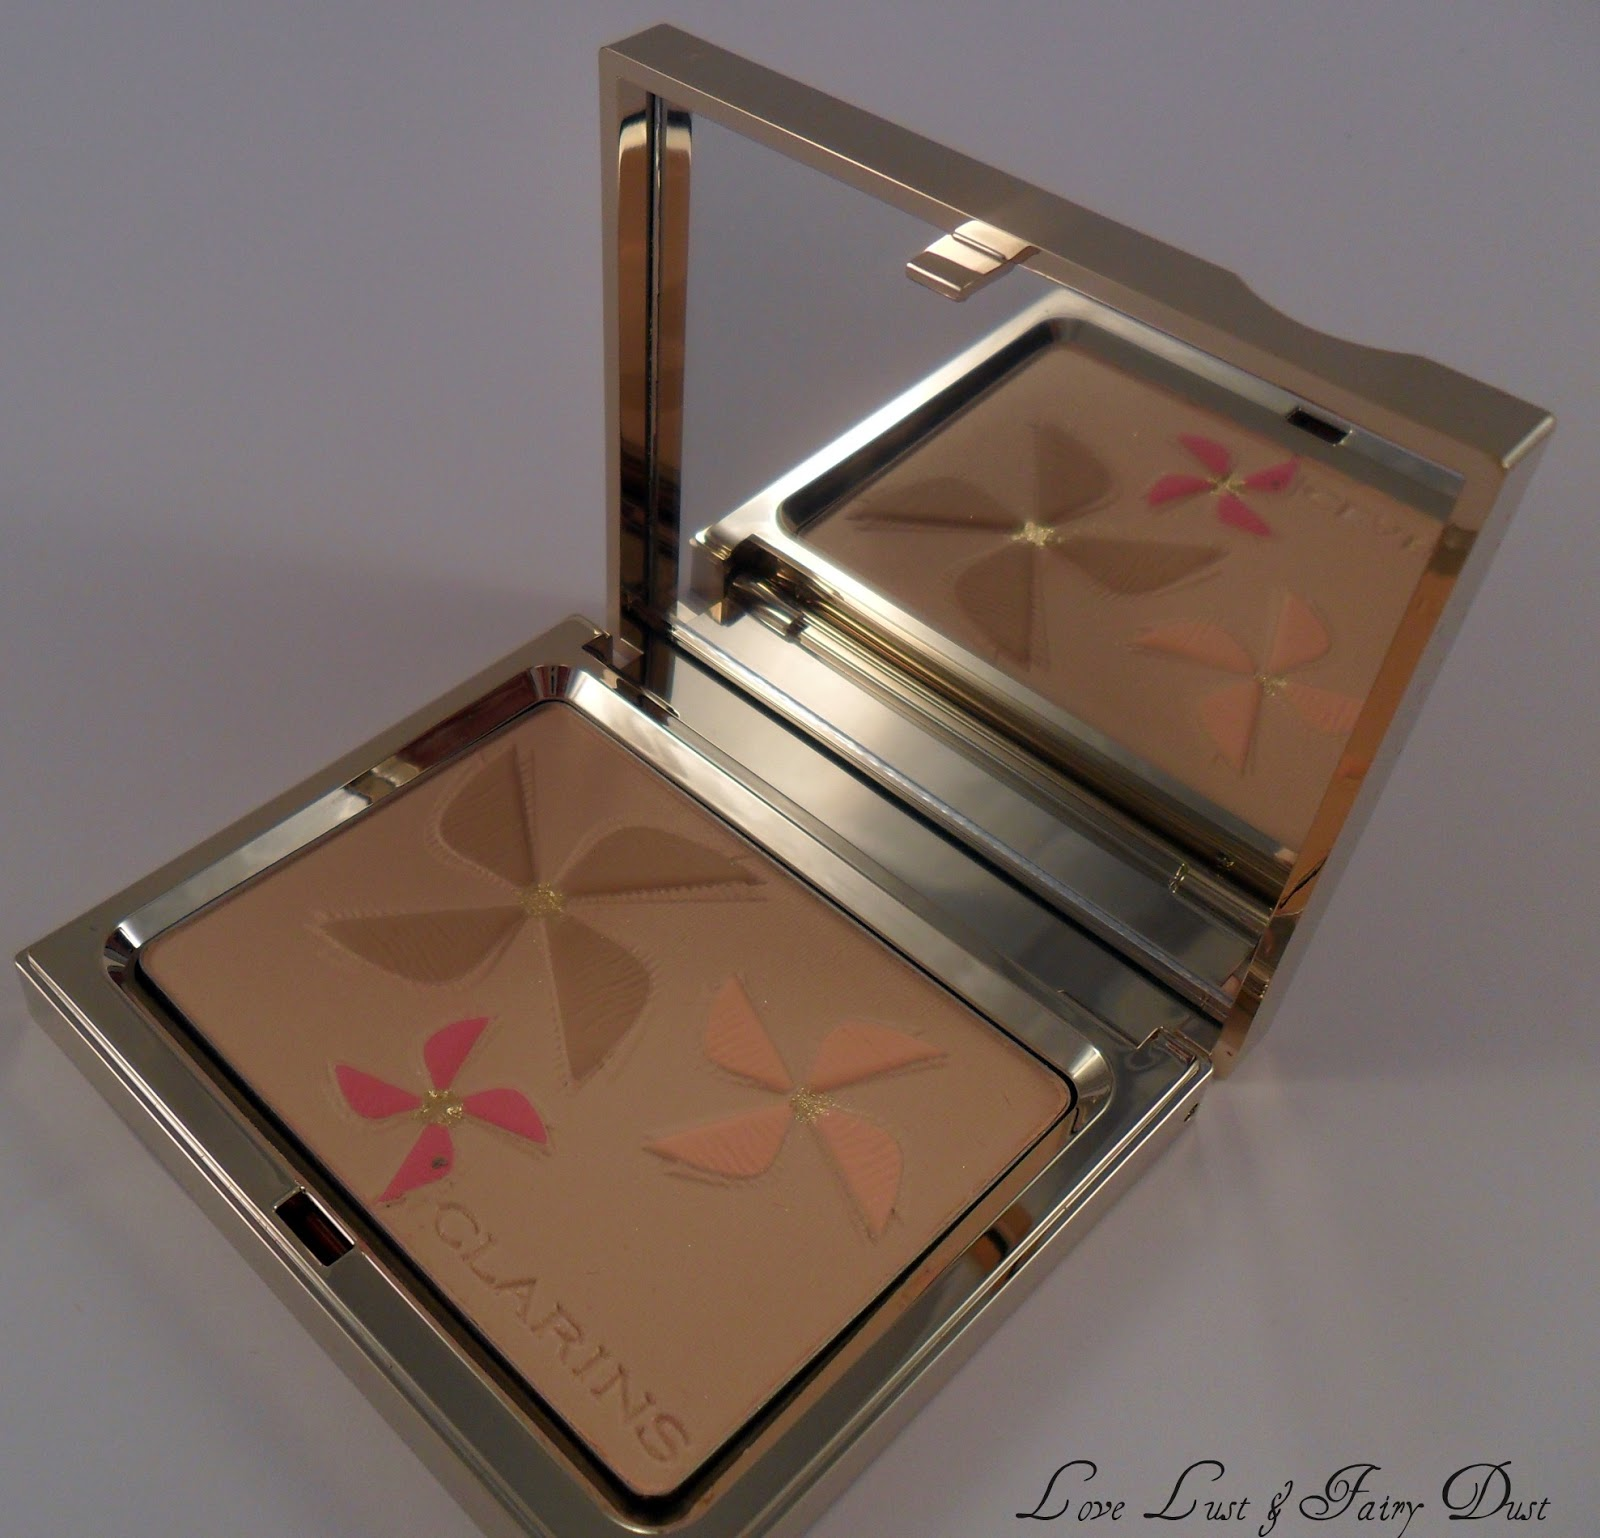 Clarins Colour Breeze Face and Blush Palette